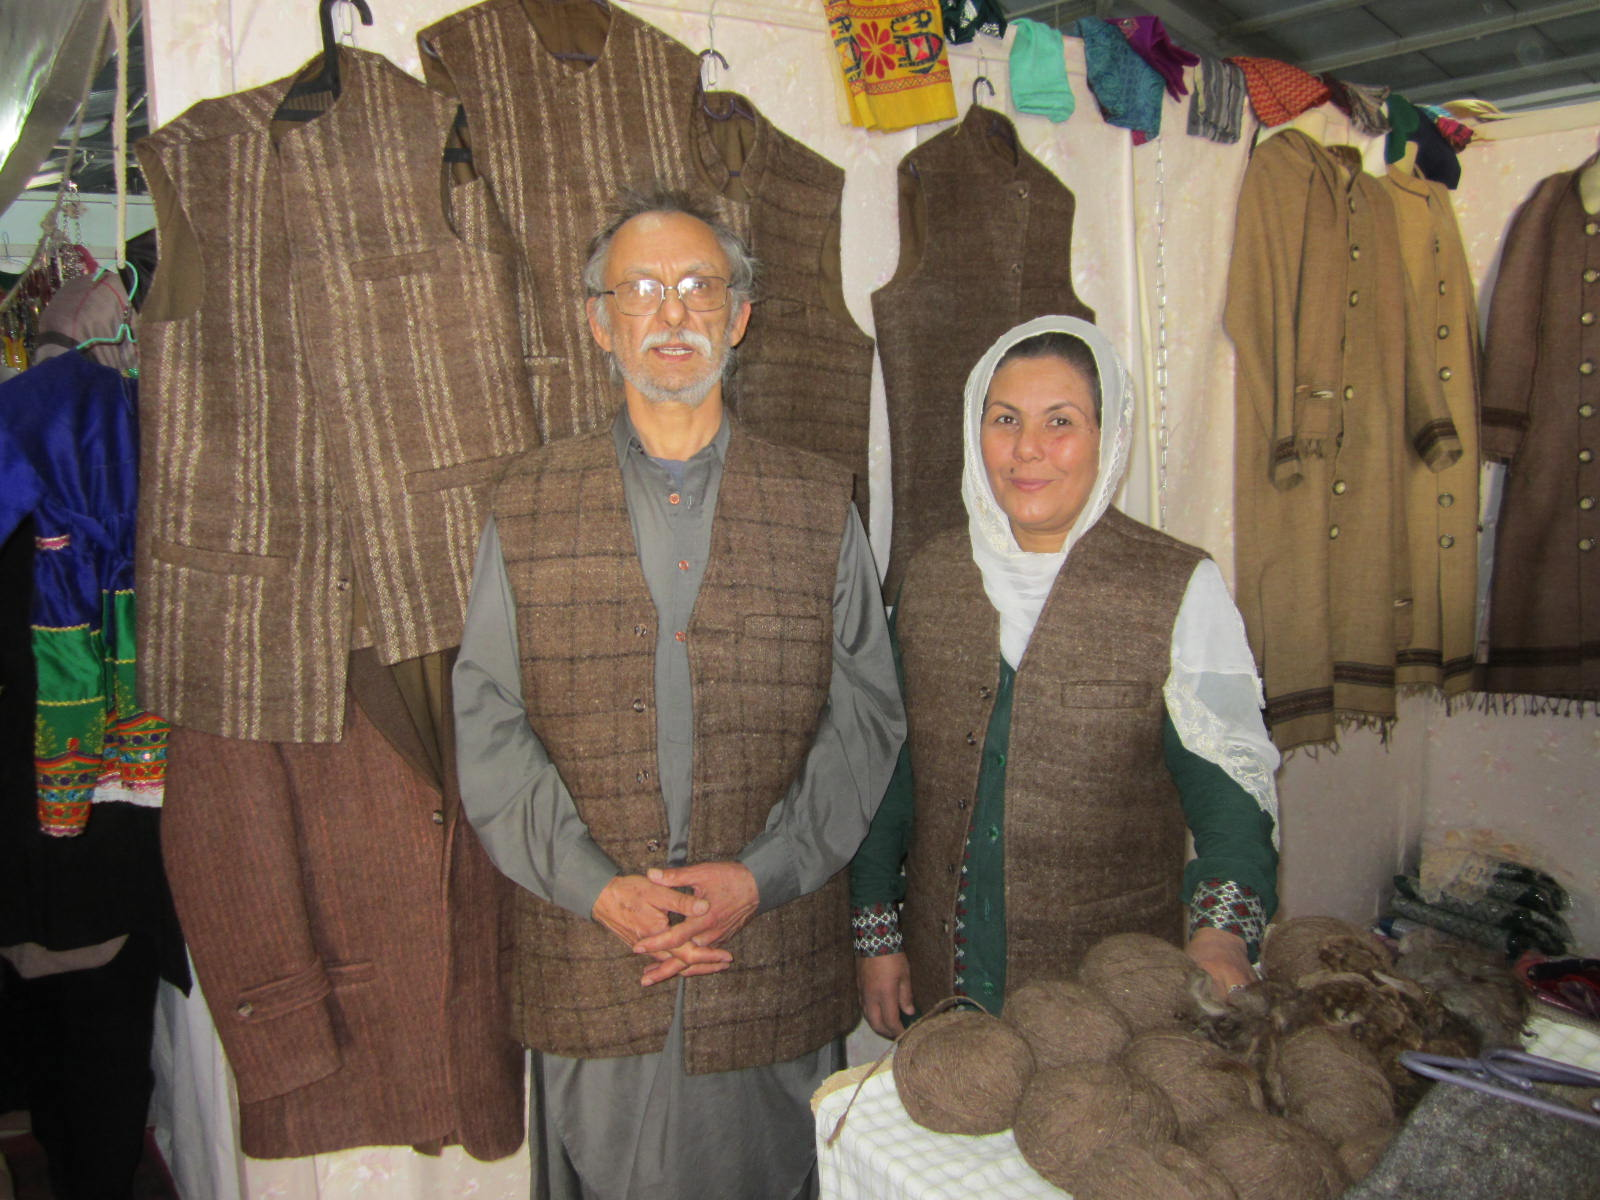 Zahra Kazemi at the trade fair in Kabul where she met Yosuf Taraki, a member of Growing Peace in Afghanistan, in October 2018. Vests made of barak are hanging in the background and Yosuf is wearing one.